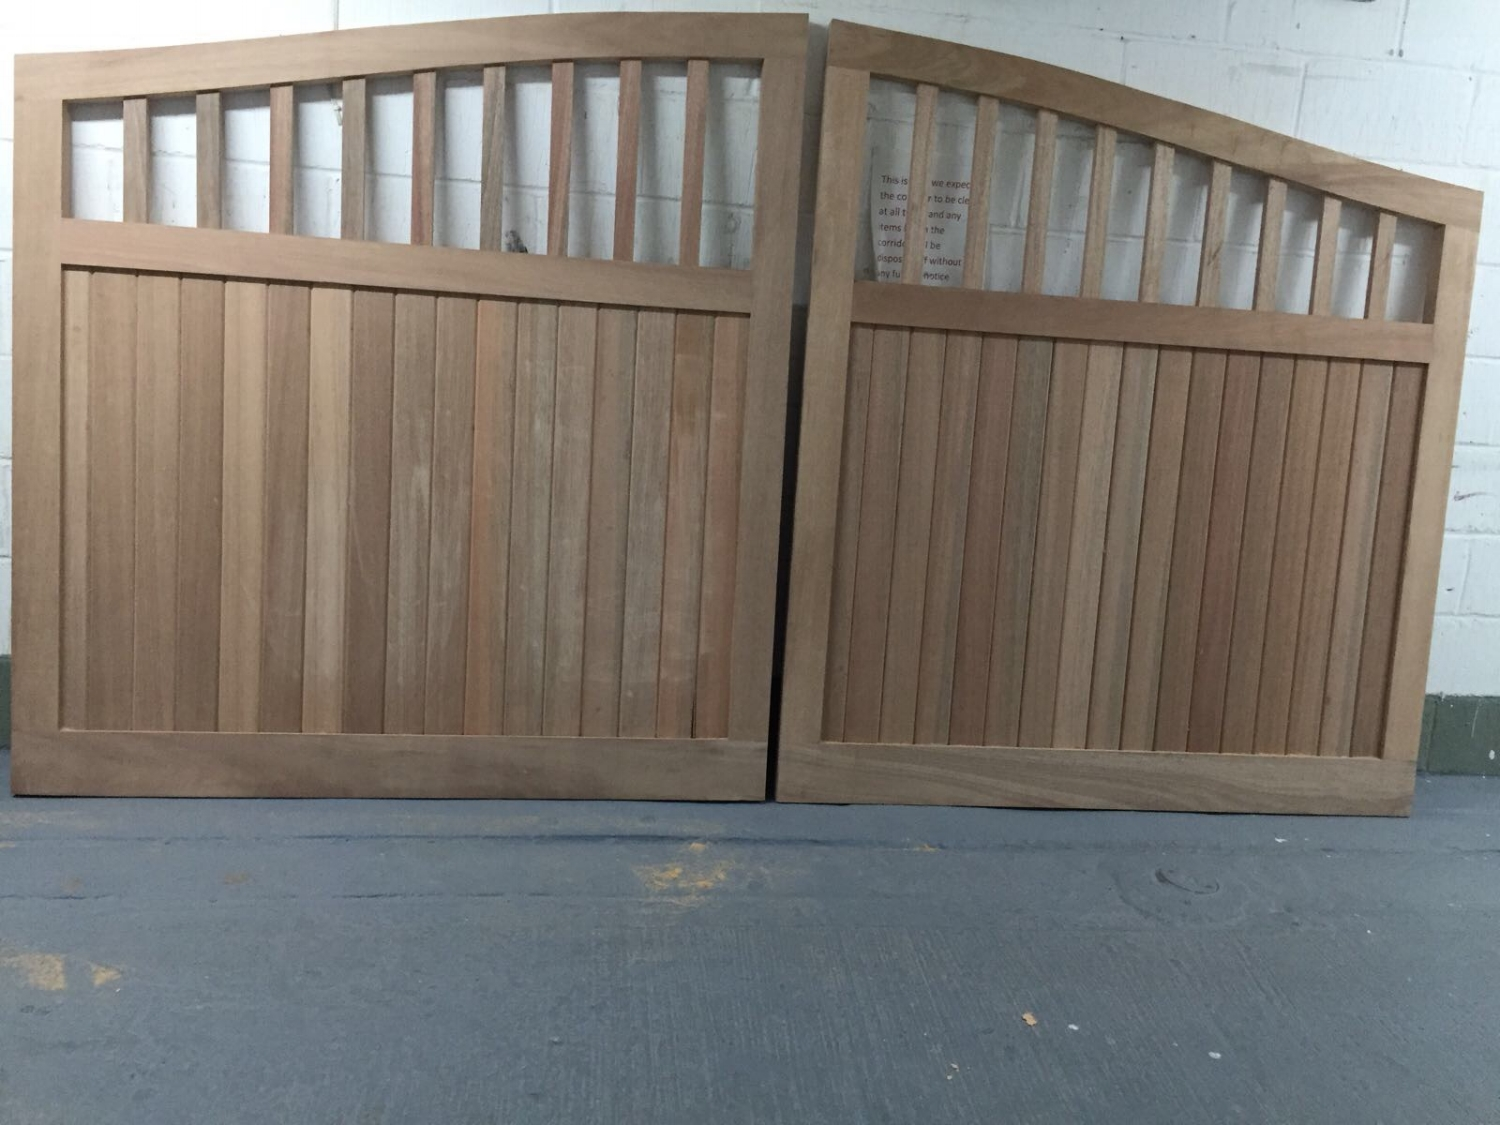 - The gates are ready to be sent to site to be fitted.